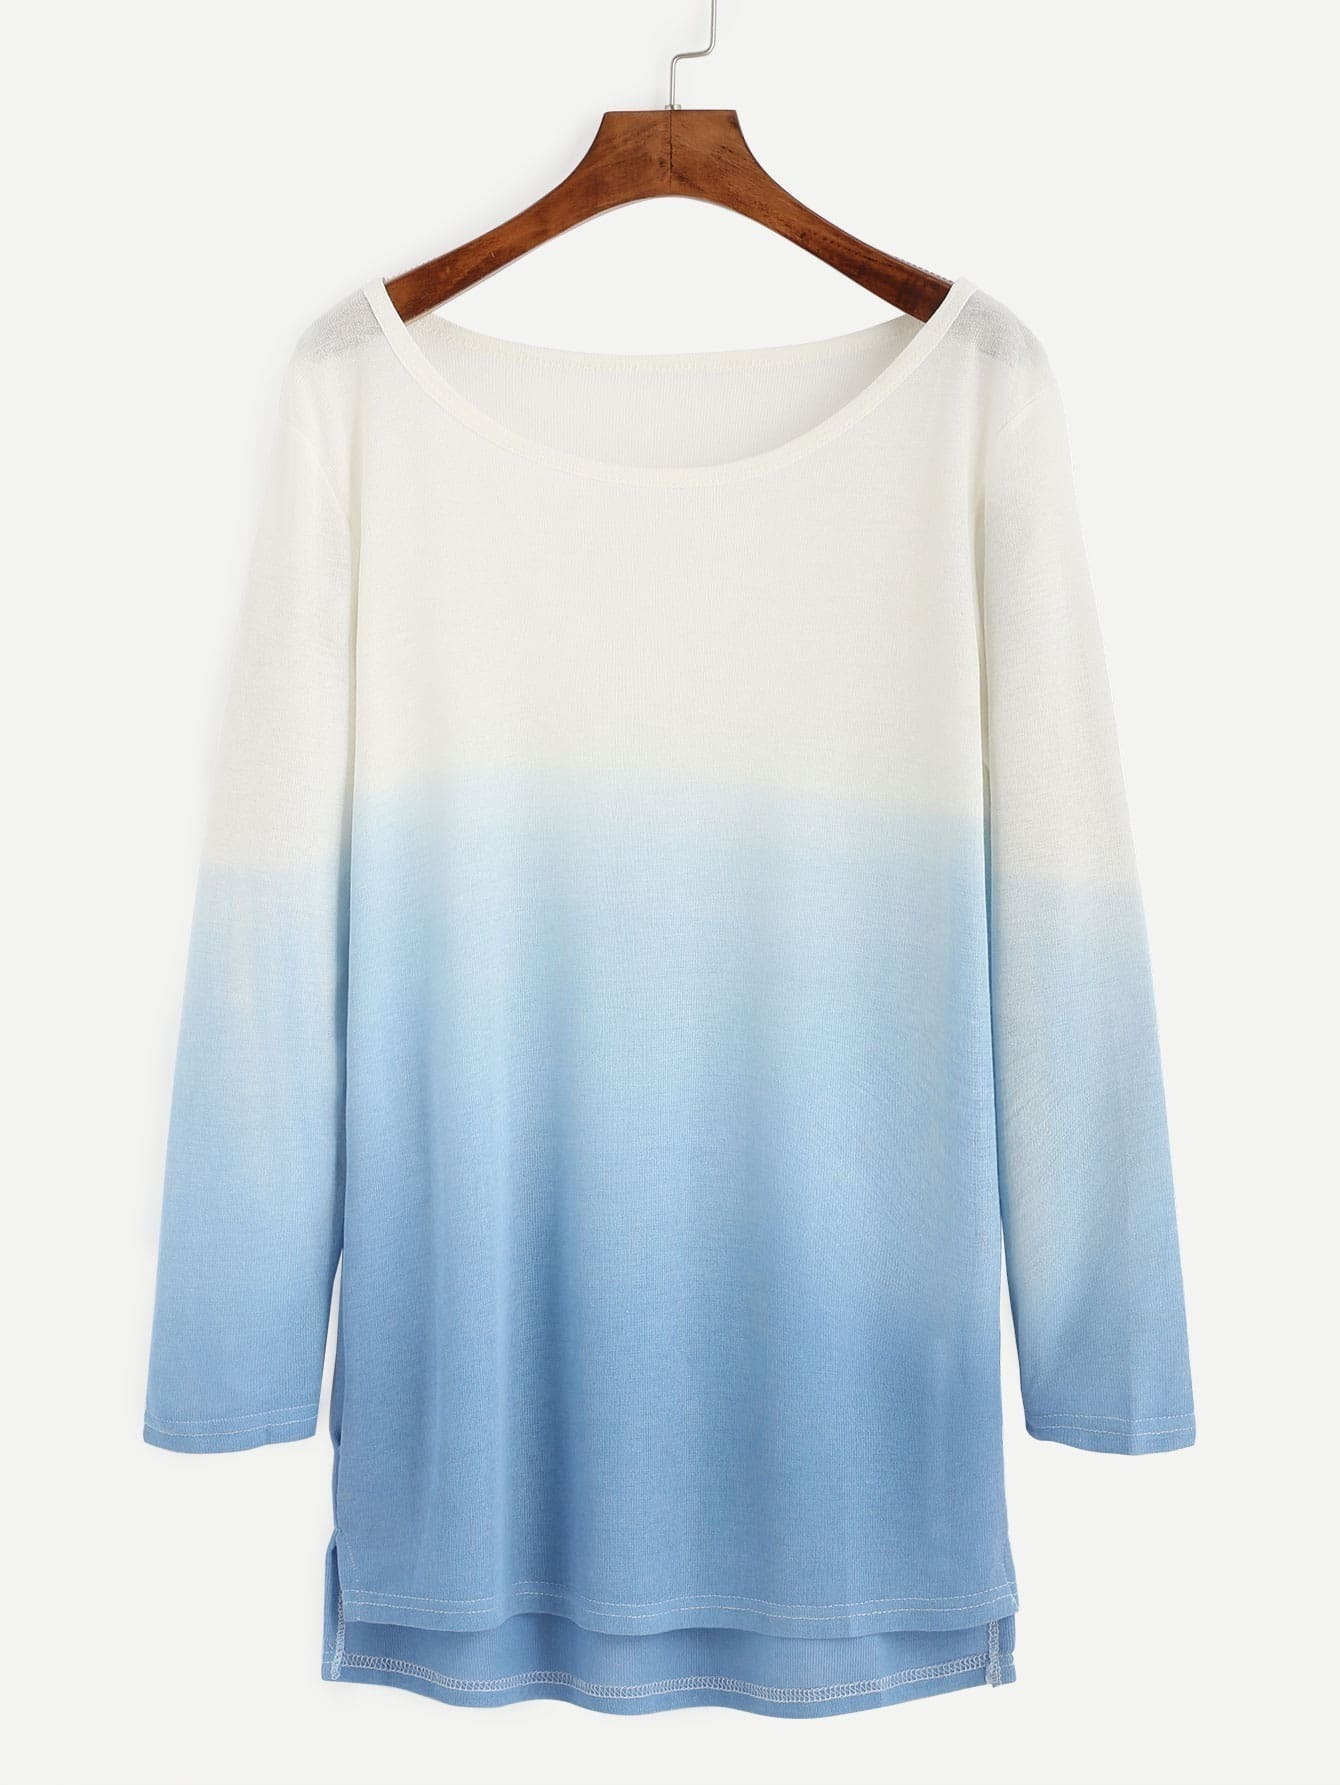 Ombre Scoop Neck High Low Knitted T Shirtfor Women Romwe